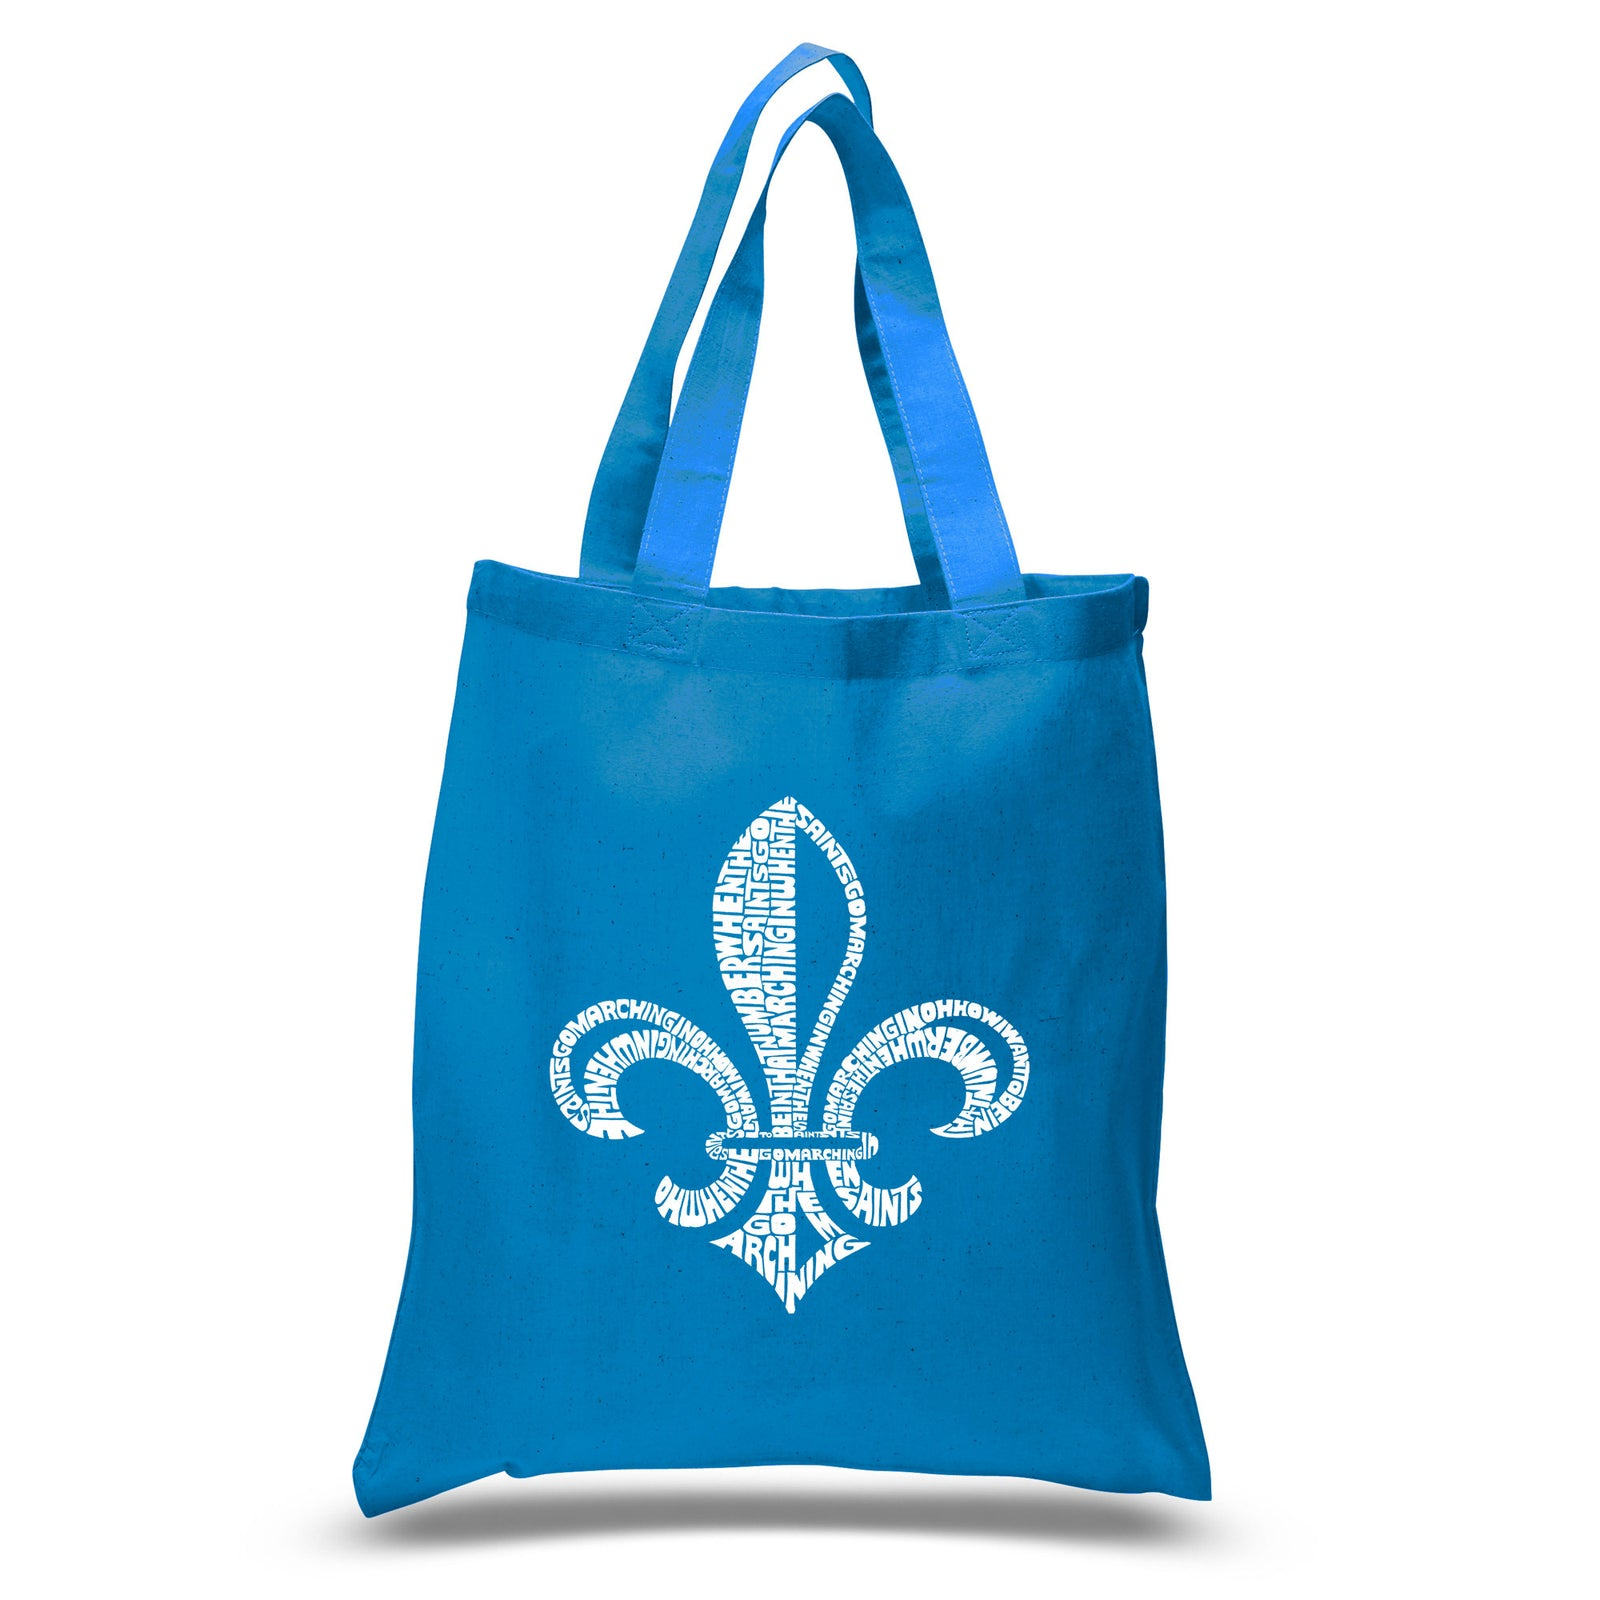 Small Tote Bag - LYRICS TO WHEN THE SAINTS GO MARCHING IN